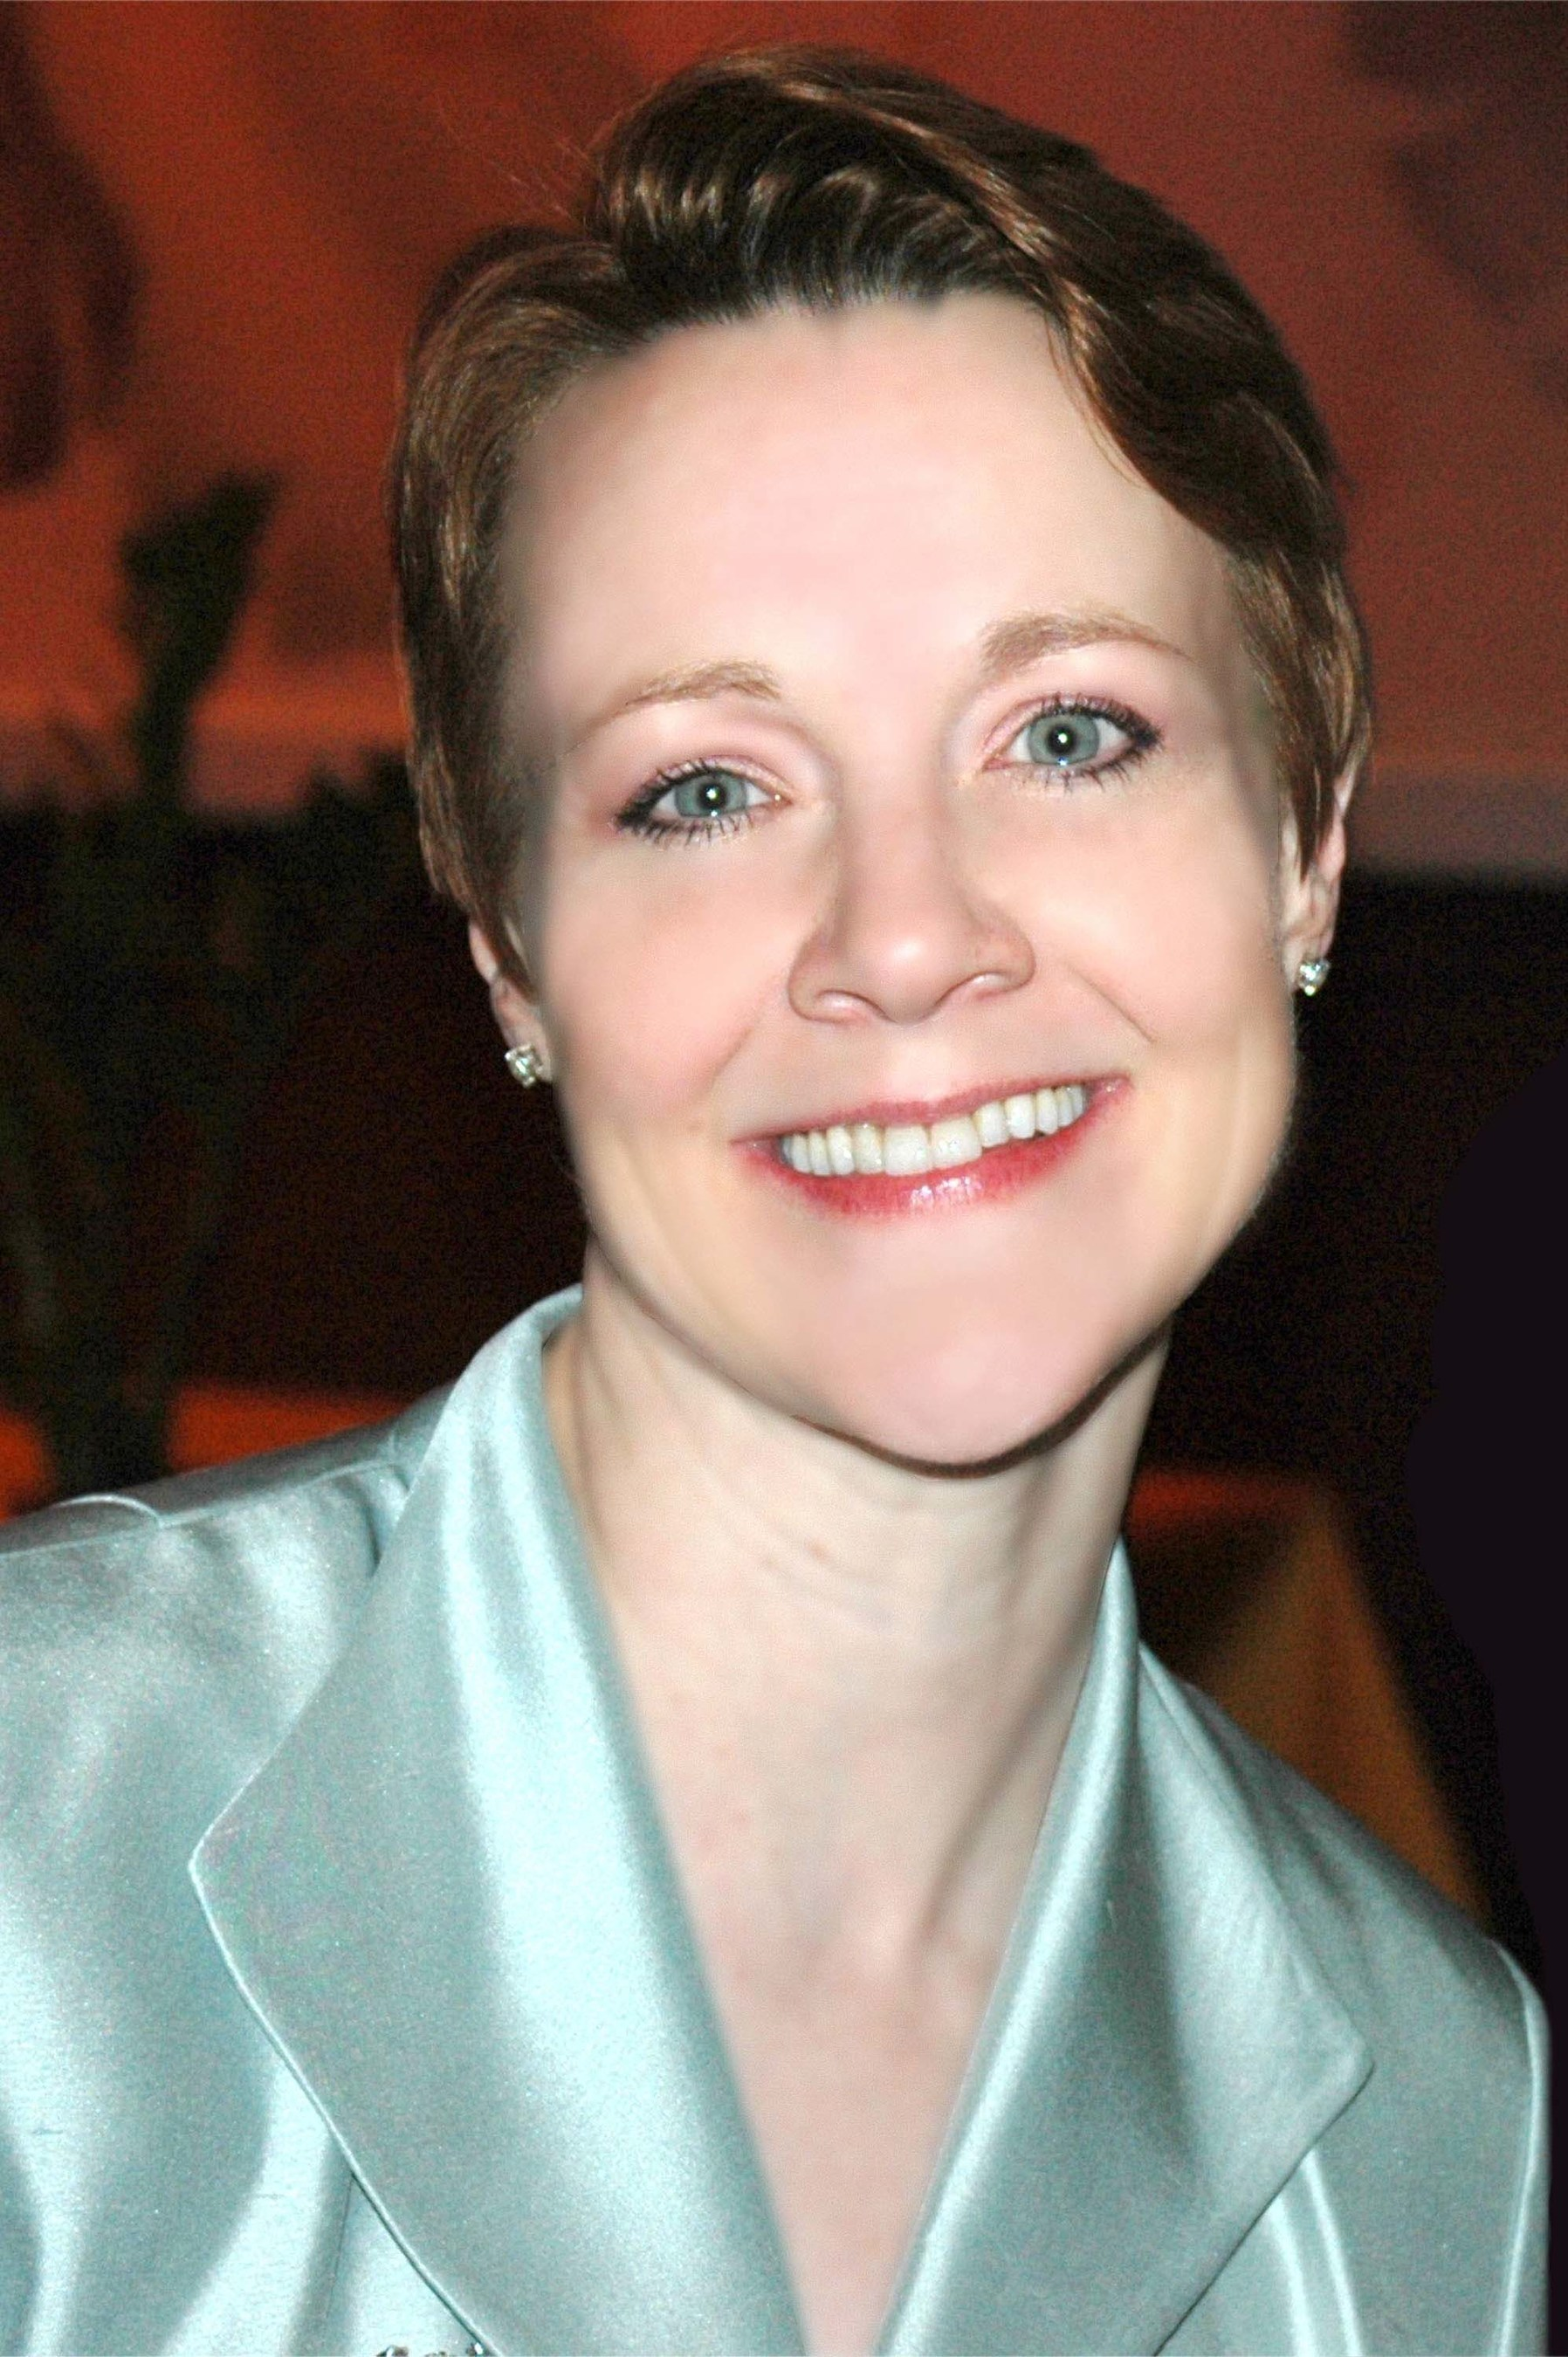 Rachel S. Moore, CEO Of American Ballet Theatre, Named President And CEO Of The Music Center In Los Angeles